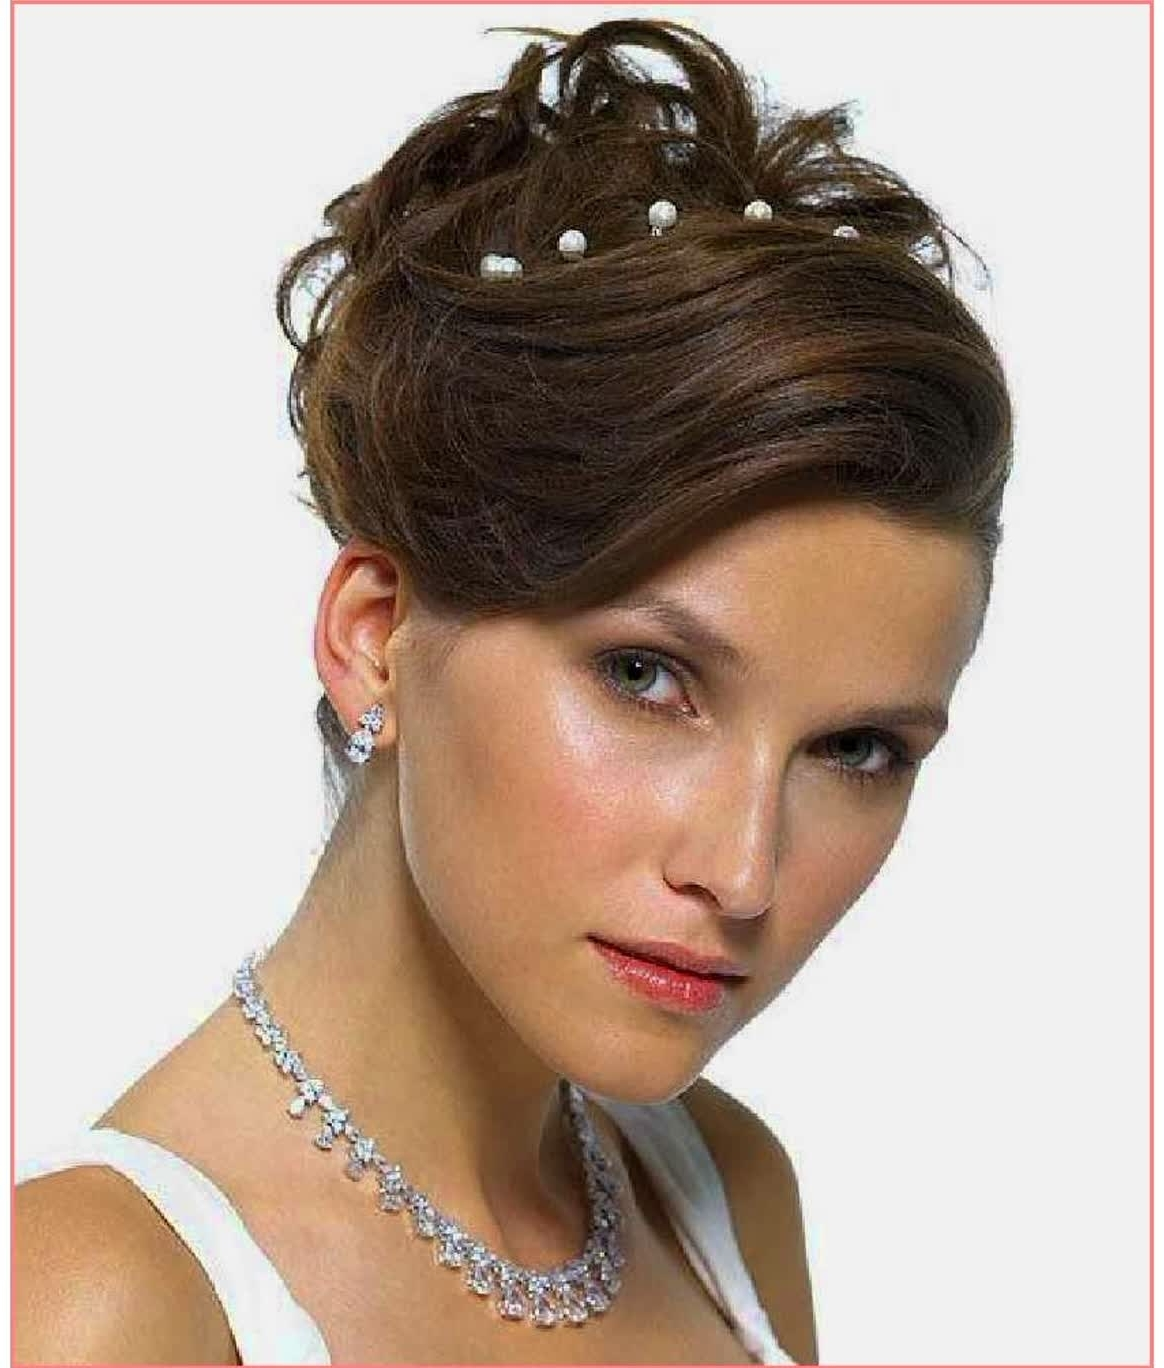 Awesome Hairstyles Wedding Hairstyles For Short Hair And Round Face Within Widely Used Wedding Hairstyles For Short Hair And Round Face (View 10 of 15)